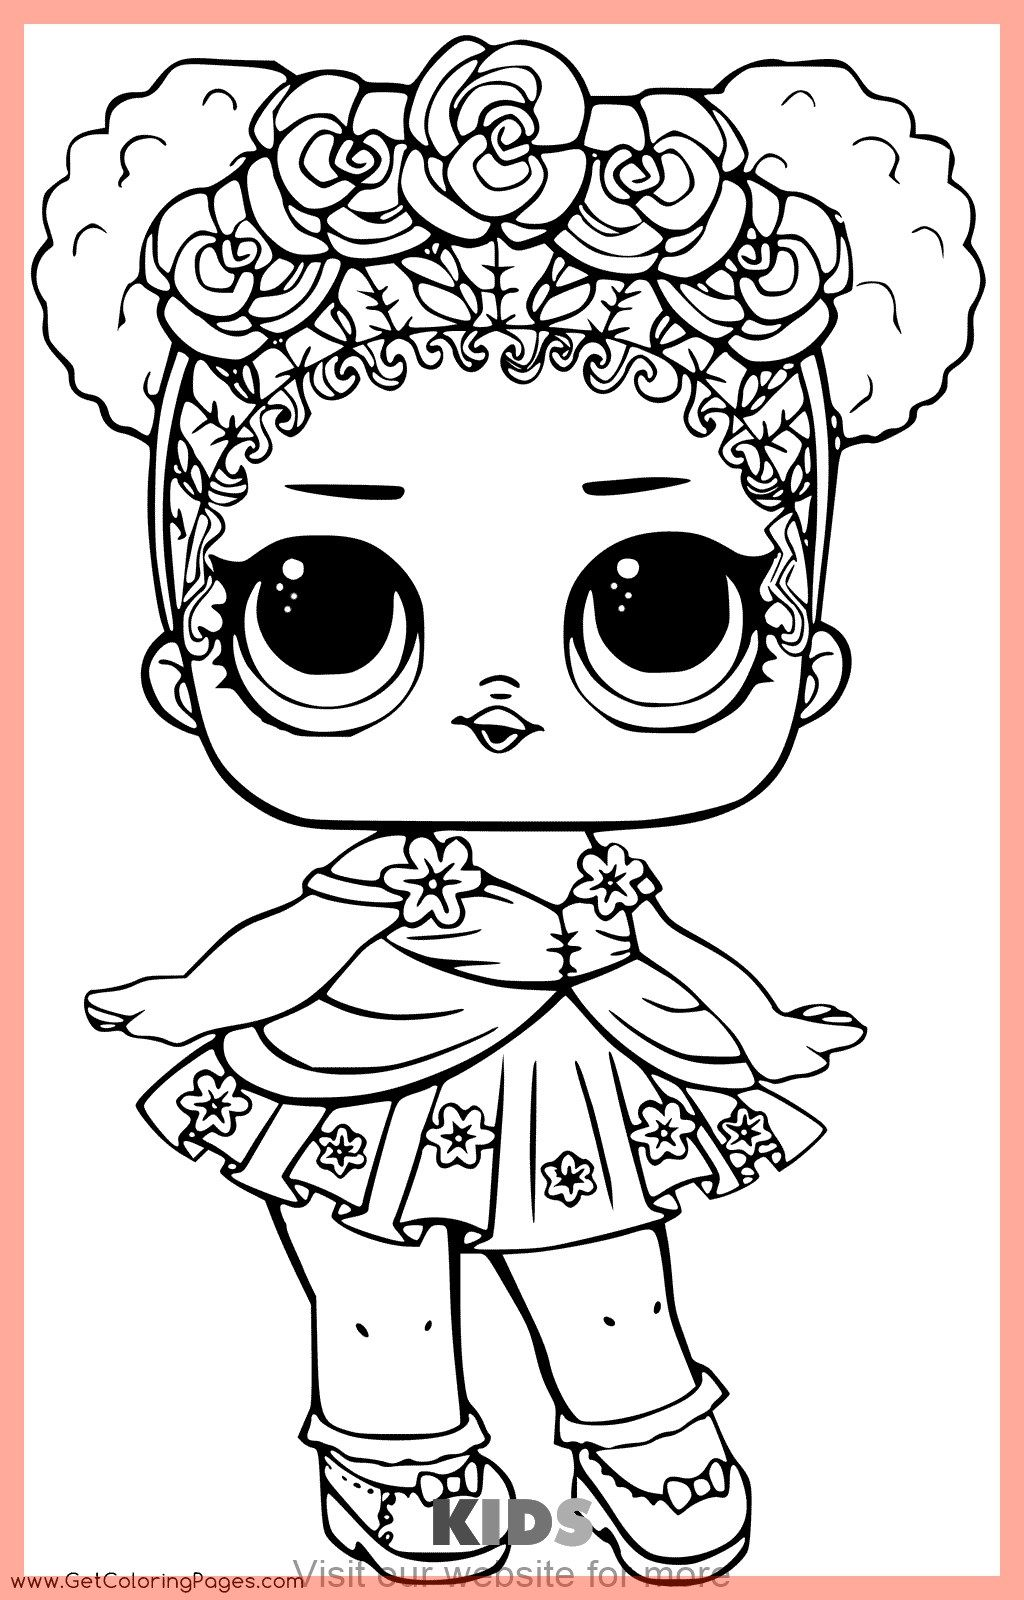 Self Worksheet 2020 New Best Unicorn Coloring Pages Cute Coloring Pages Coloring Pages For Girls